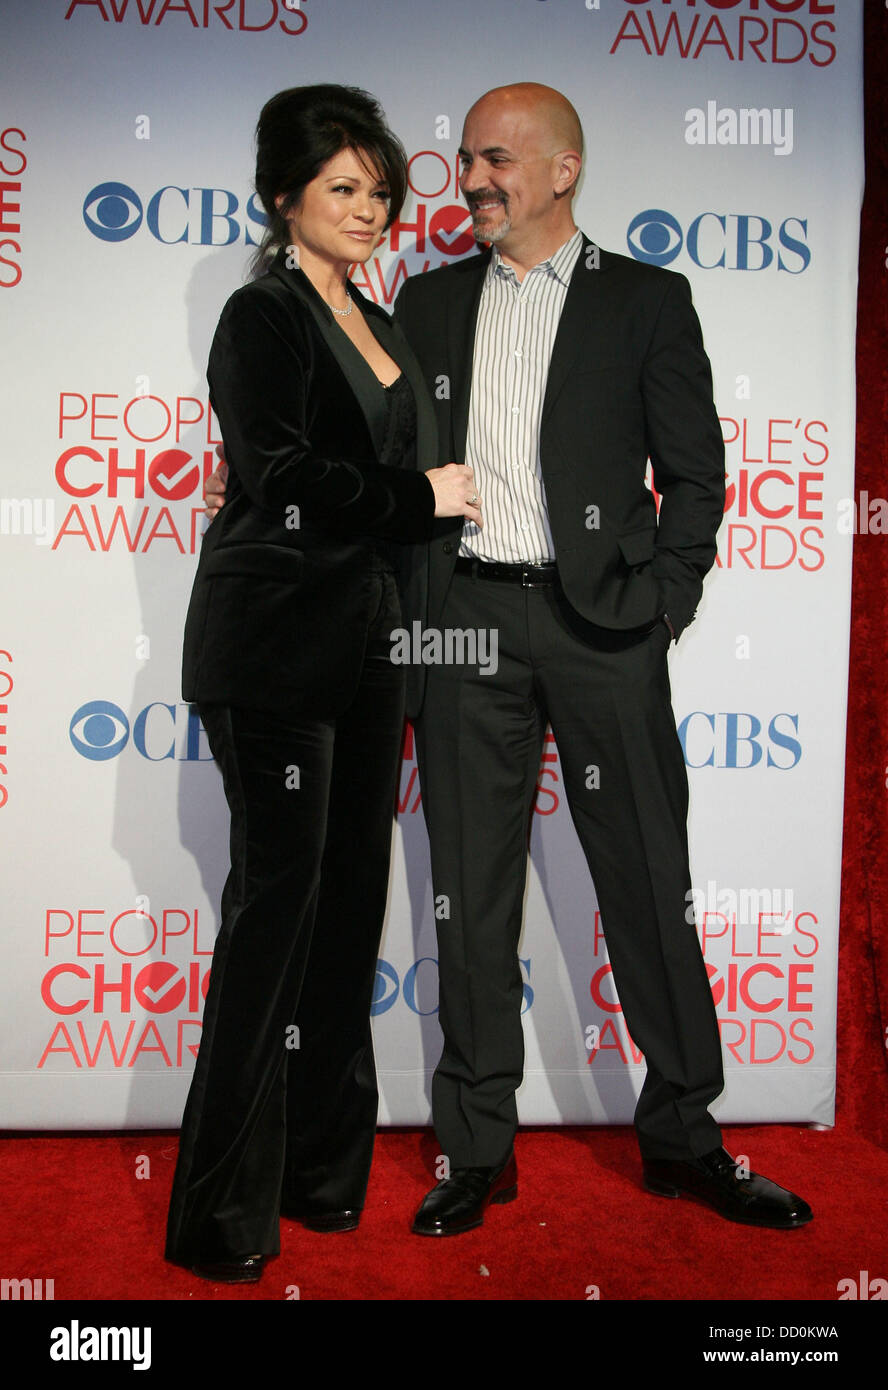 Valerie Bertinelli And Husband Tom Vitale 2012 People S Choice Awards Stock Photo Alamy